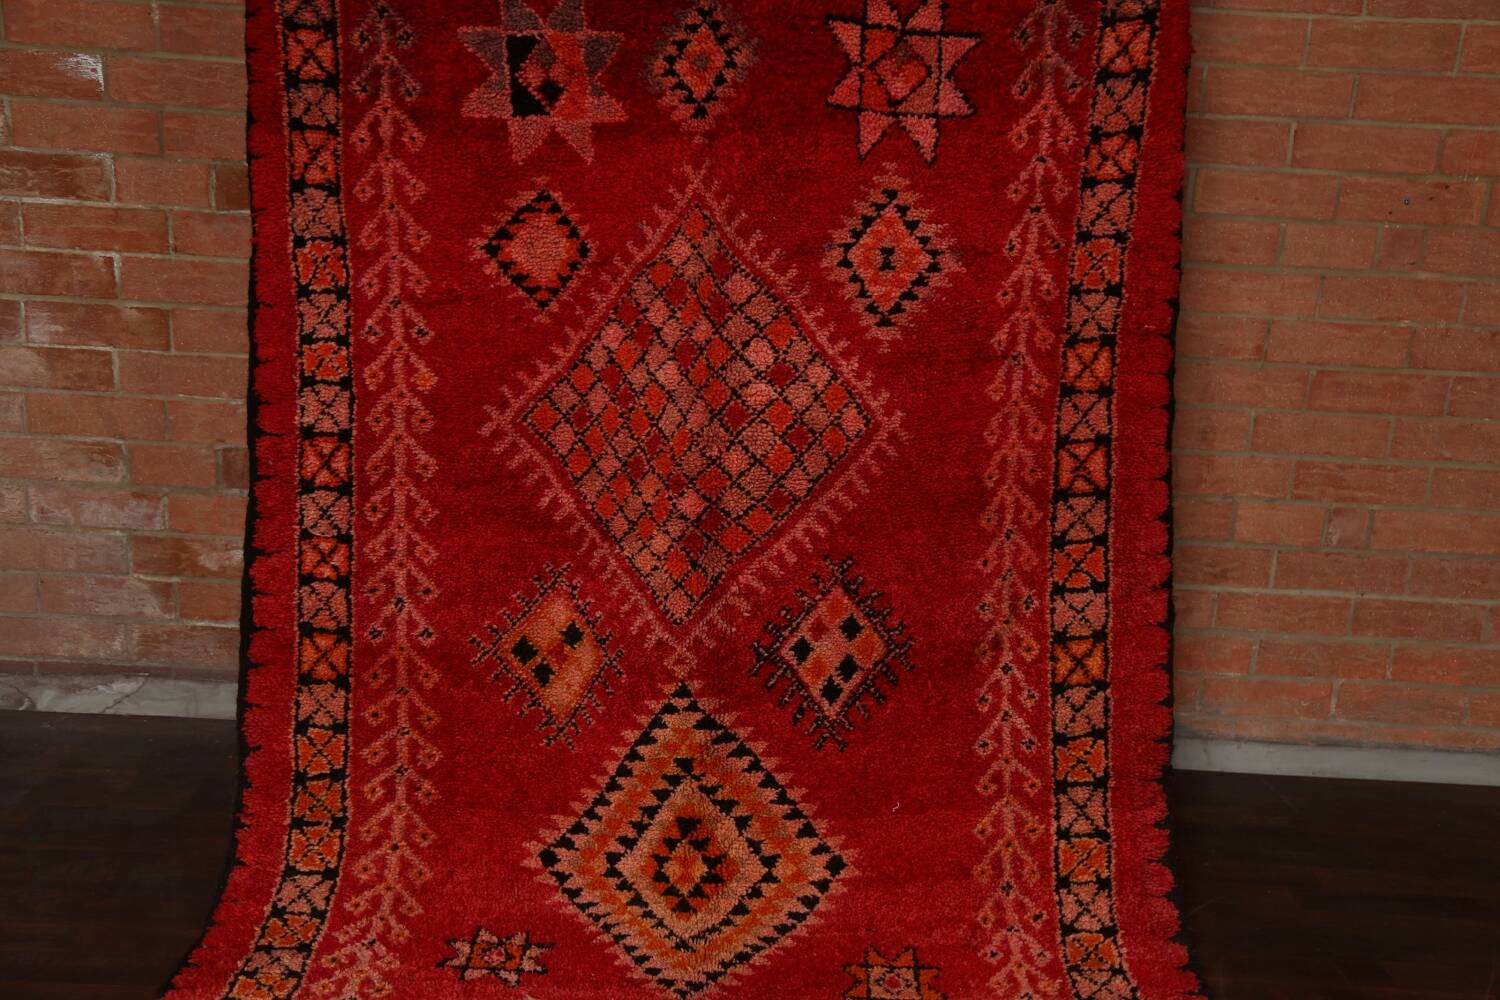 Red Moroccan Berber Area Rug 6x11 image 16